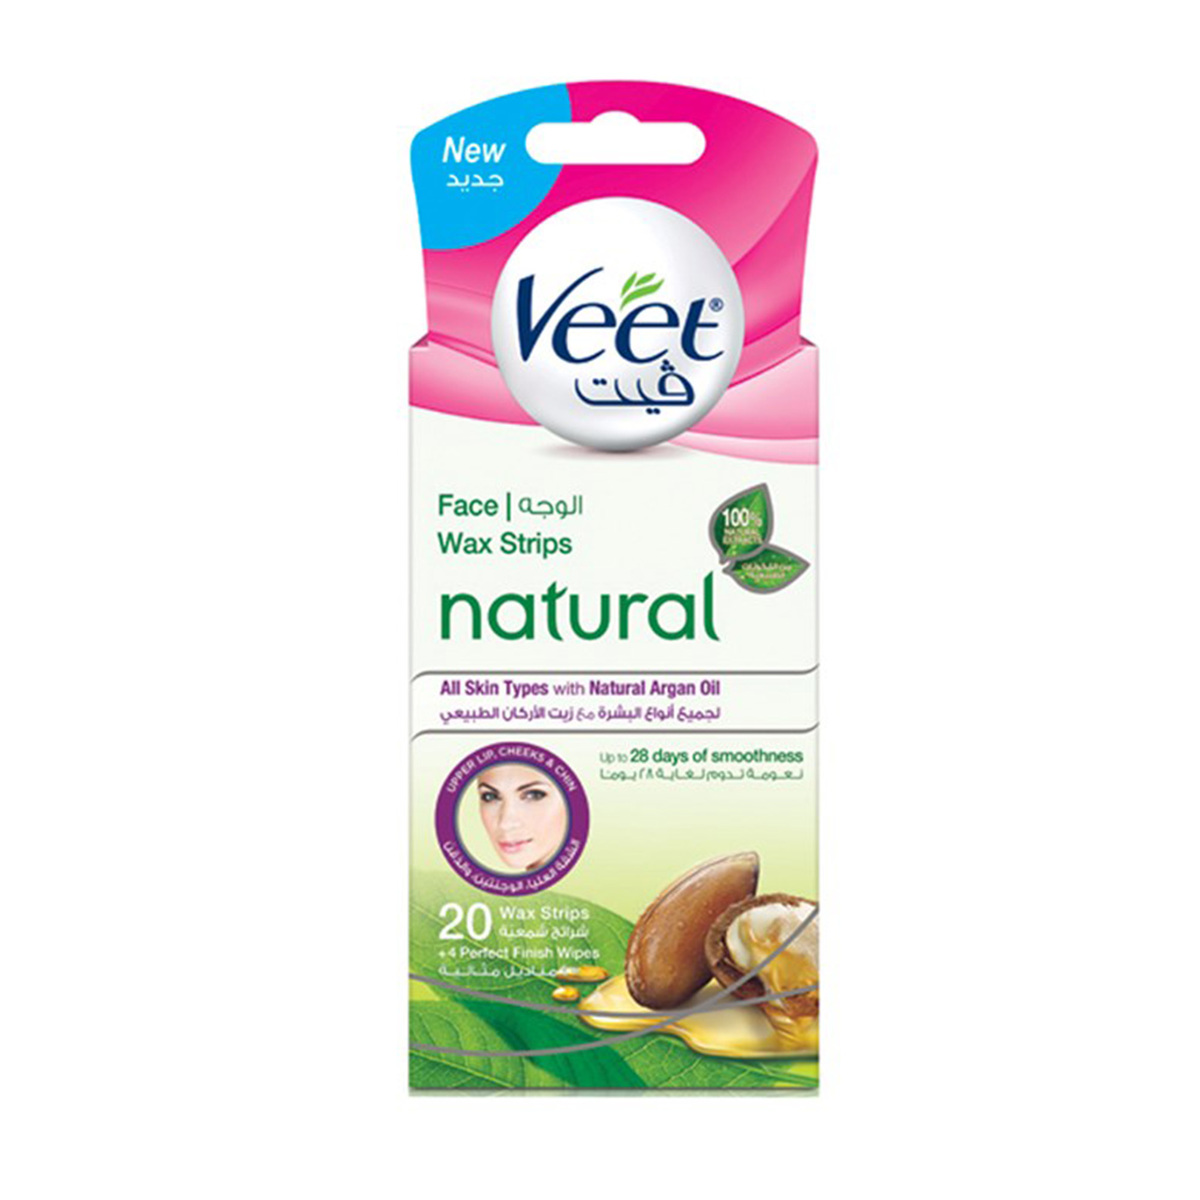 Buy Veet Hair Removal Face Wax Strips Argan Oil 20pcs Online